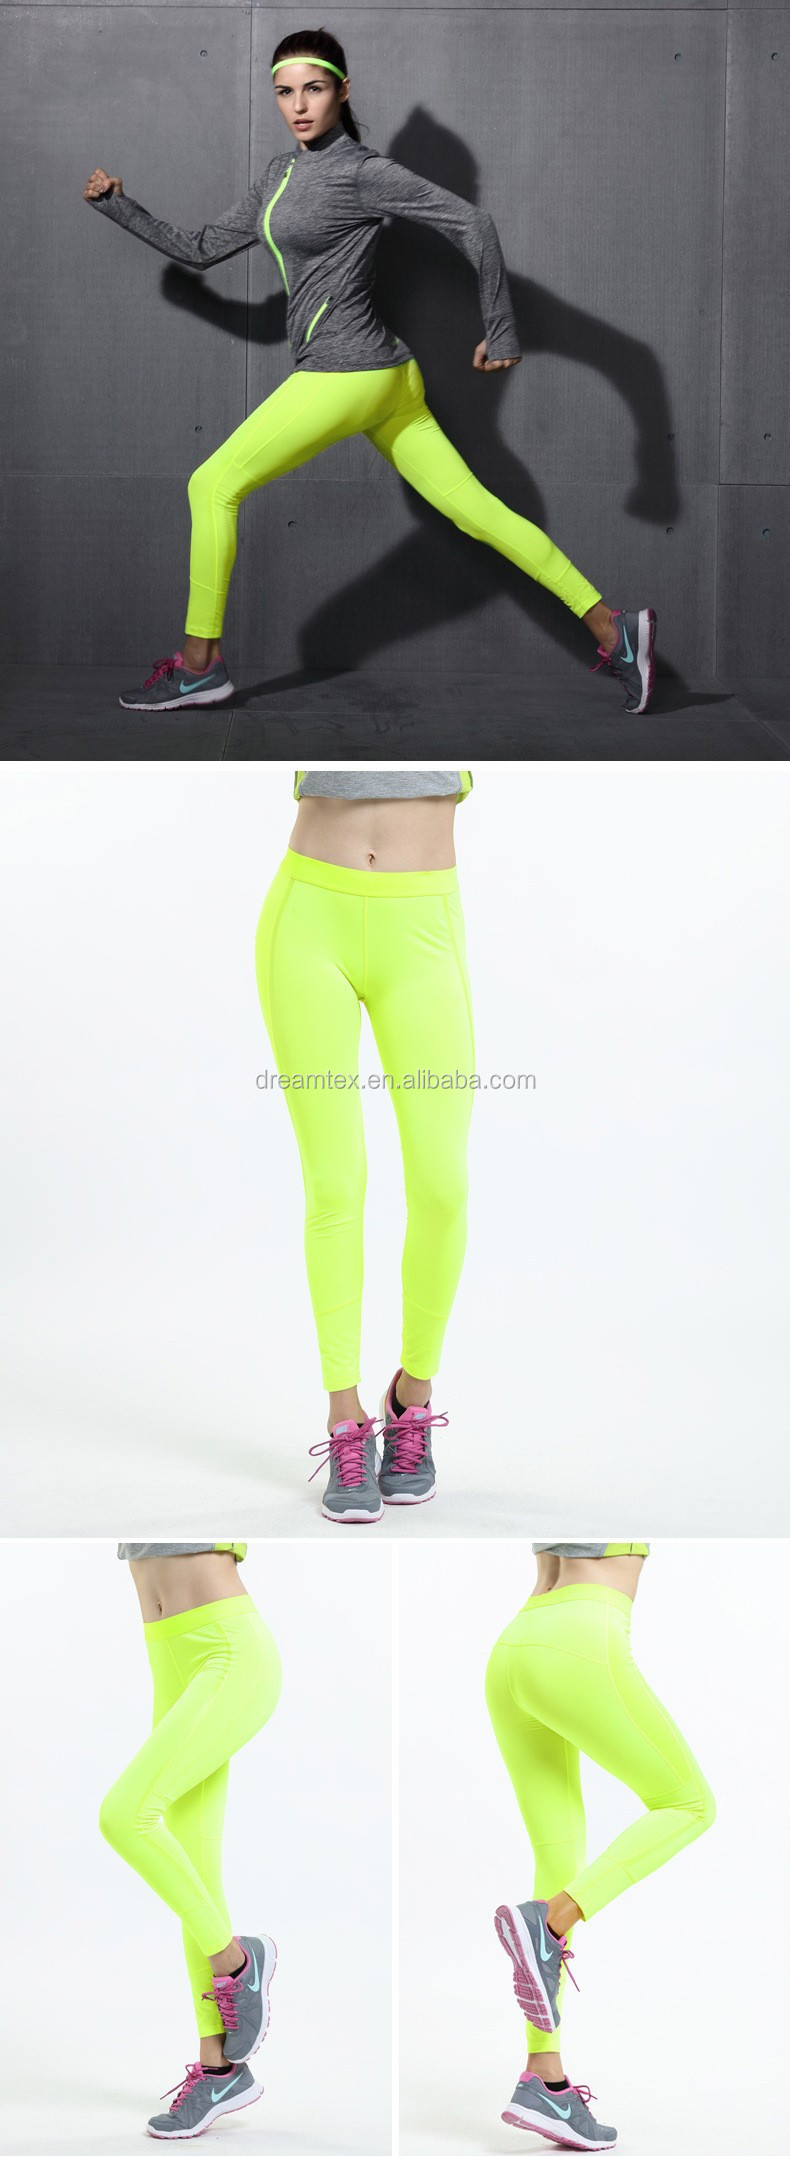 High quality seamless legging women gym pants sports legging yoga legging